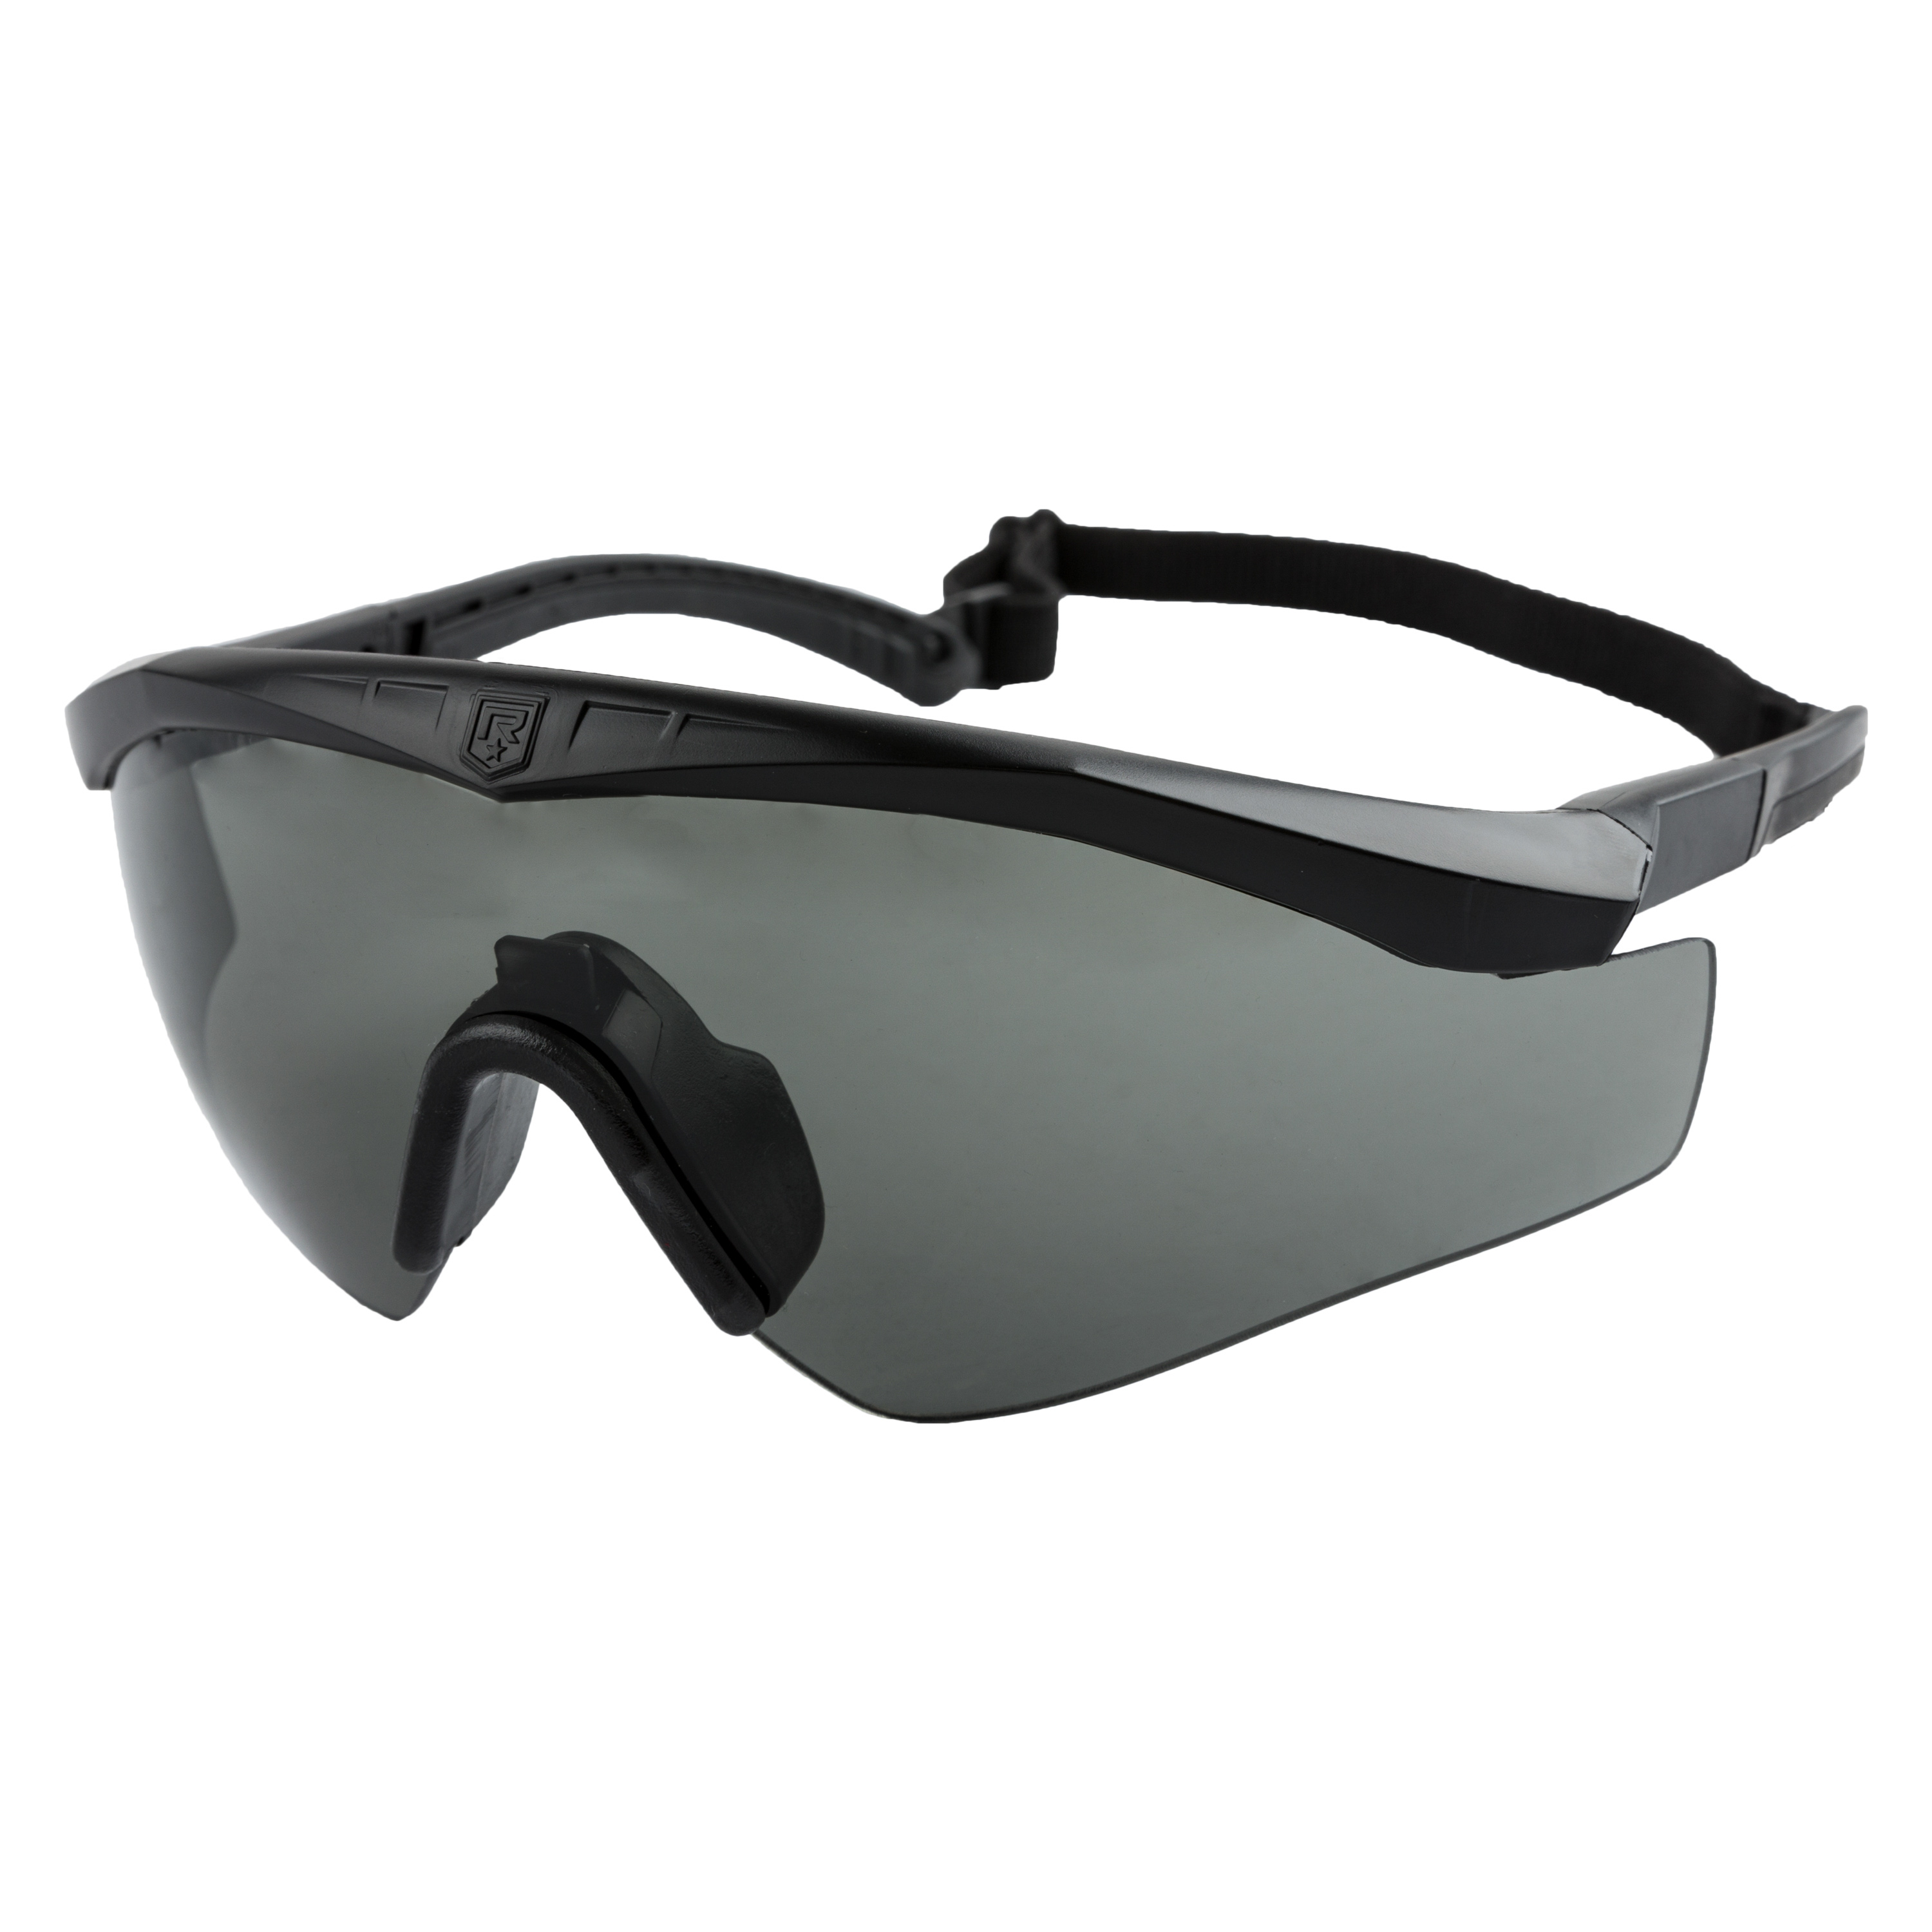 Revision Brille Sawfly Max-Wrap Basic Kit smoke small